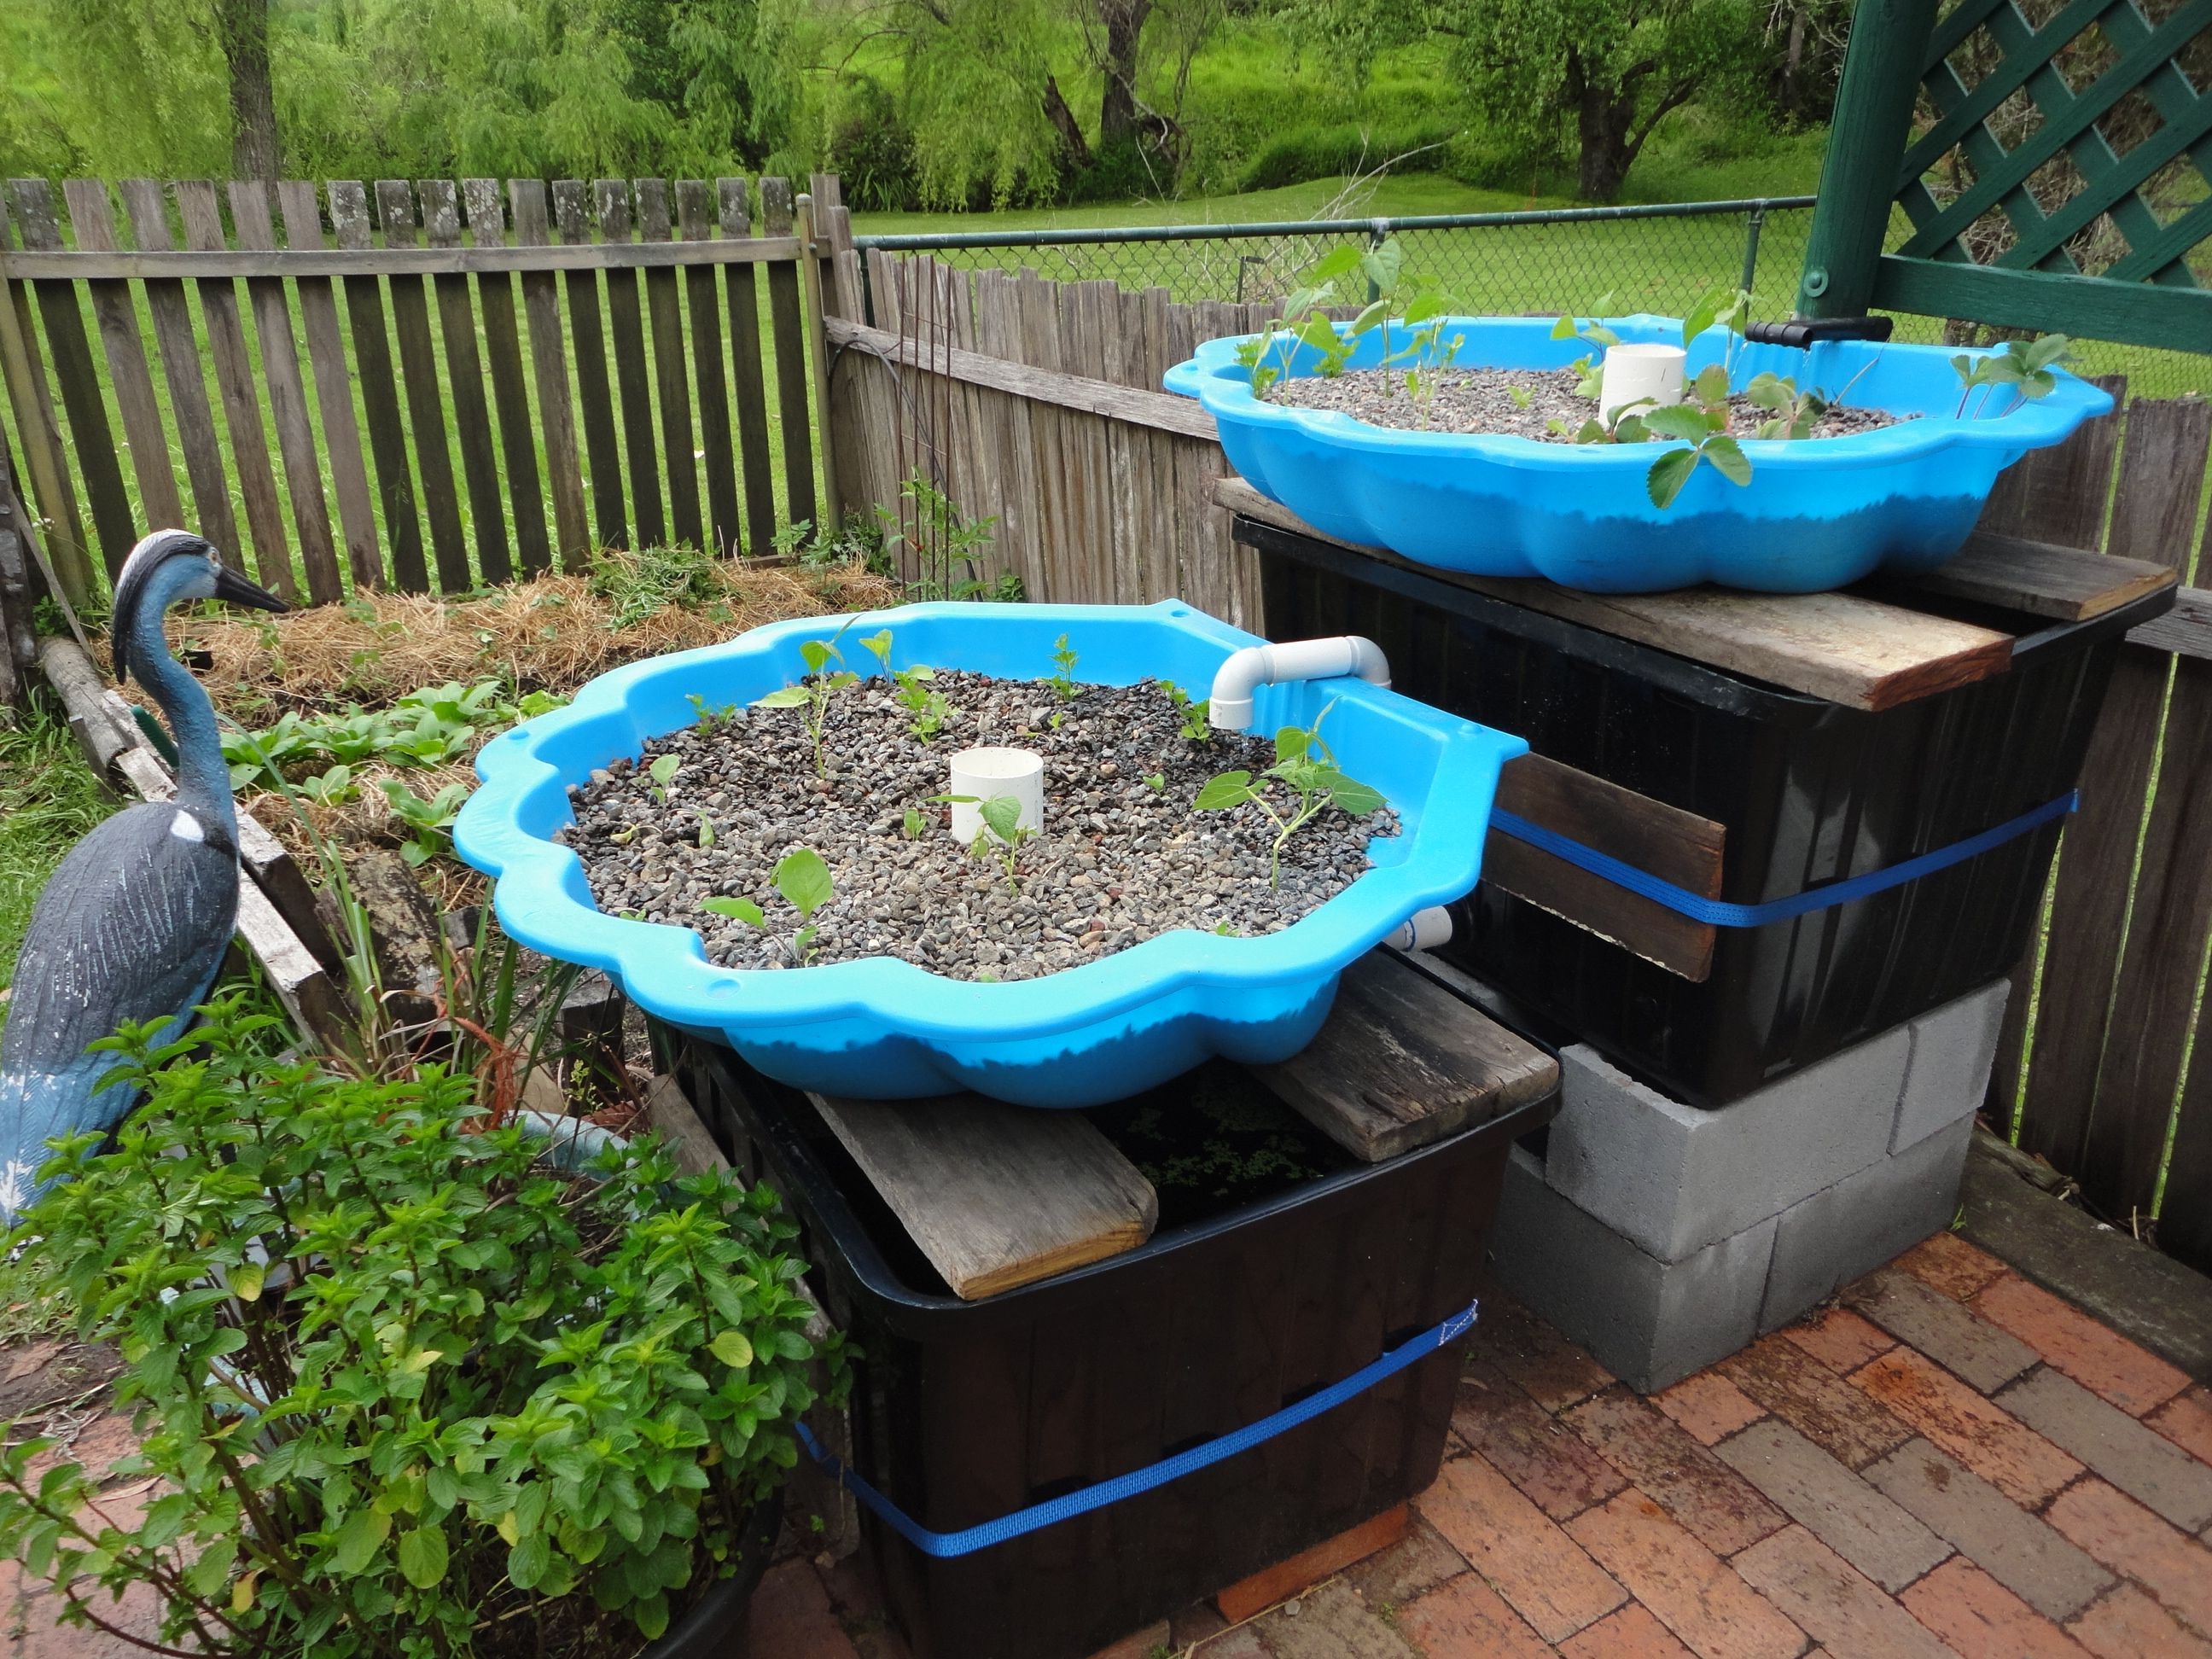 Aquaponics small baby pool aquaponics system for Aquaponics pond design